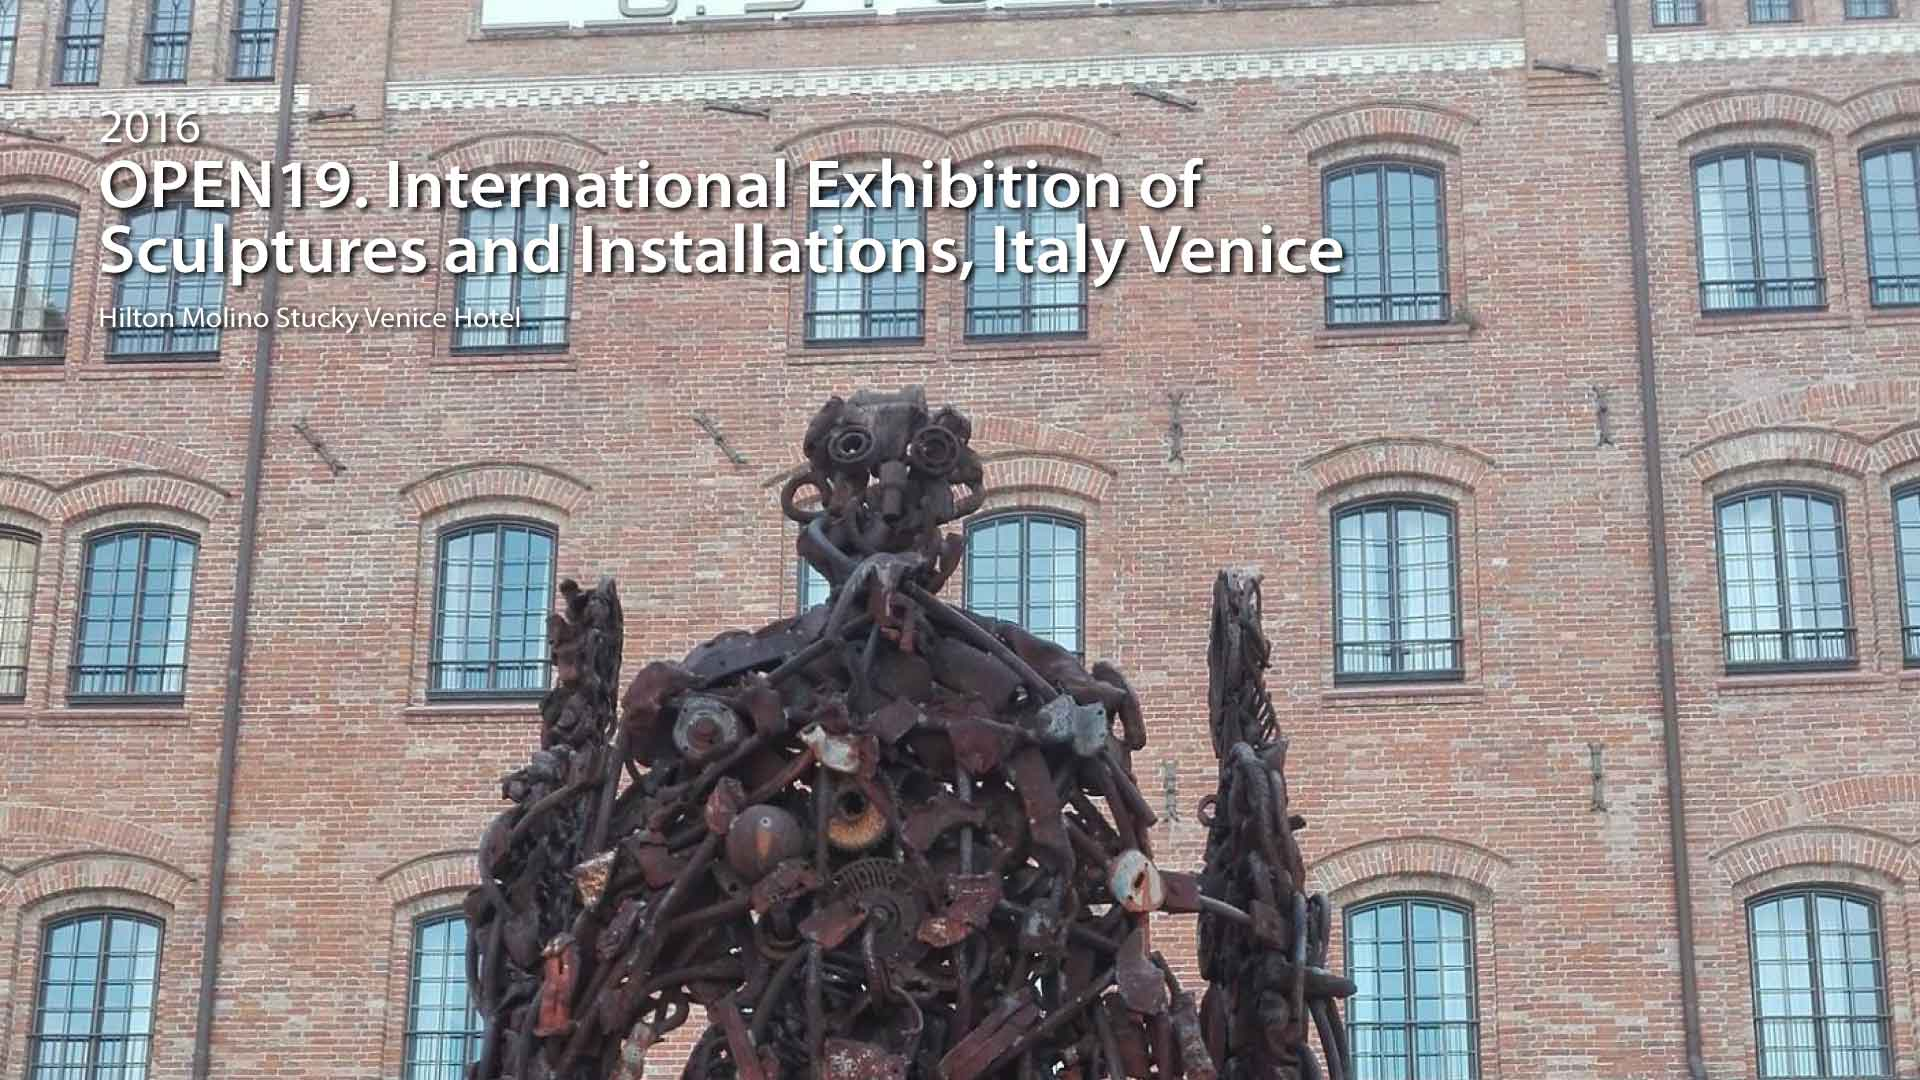 2016|OPEN19. International Exhibition of  Sculptures and Installations, Italy Venice -